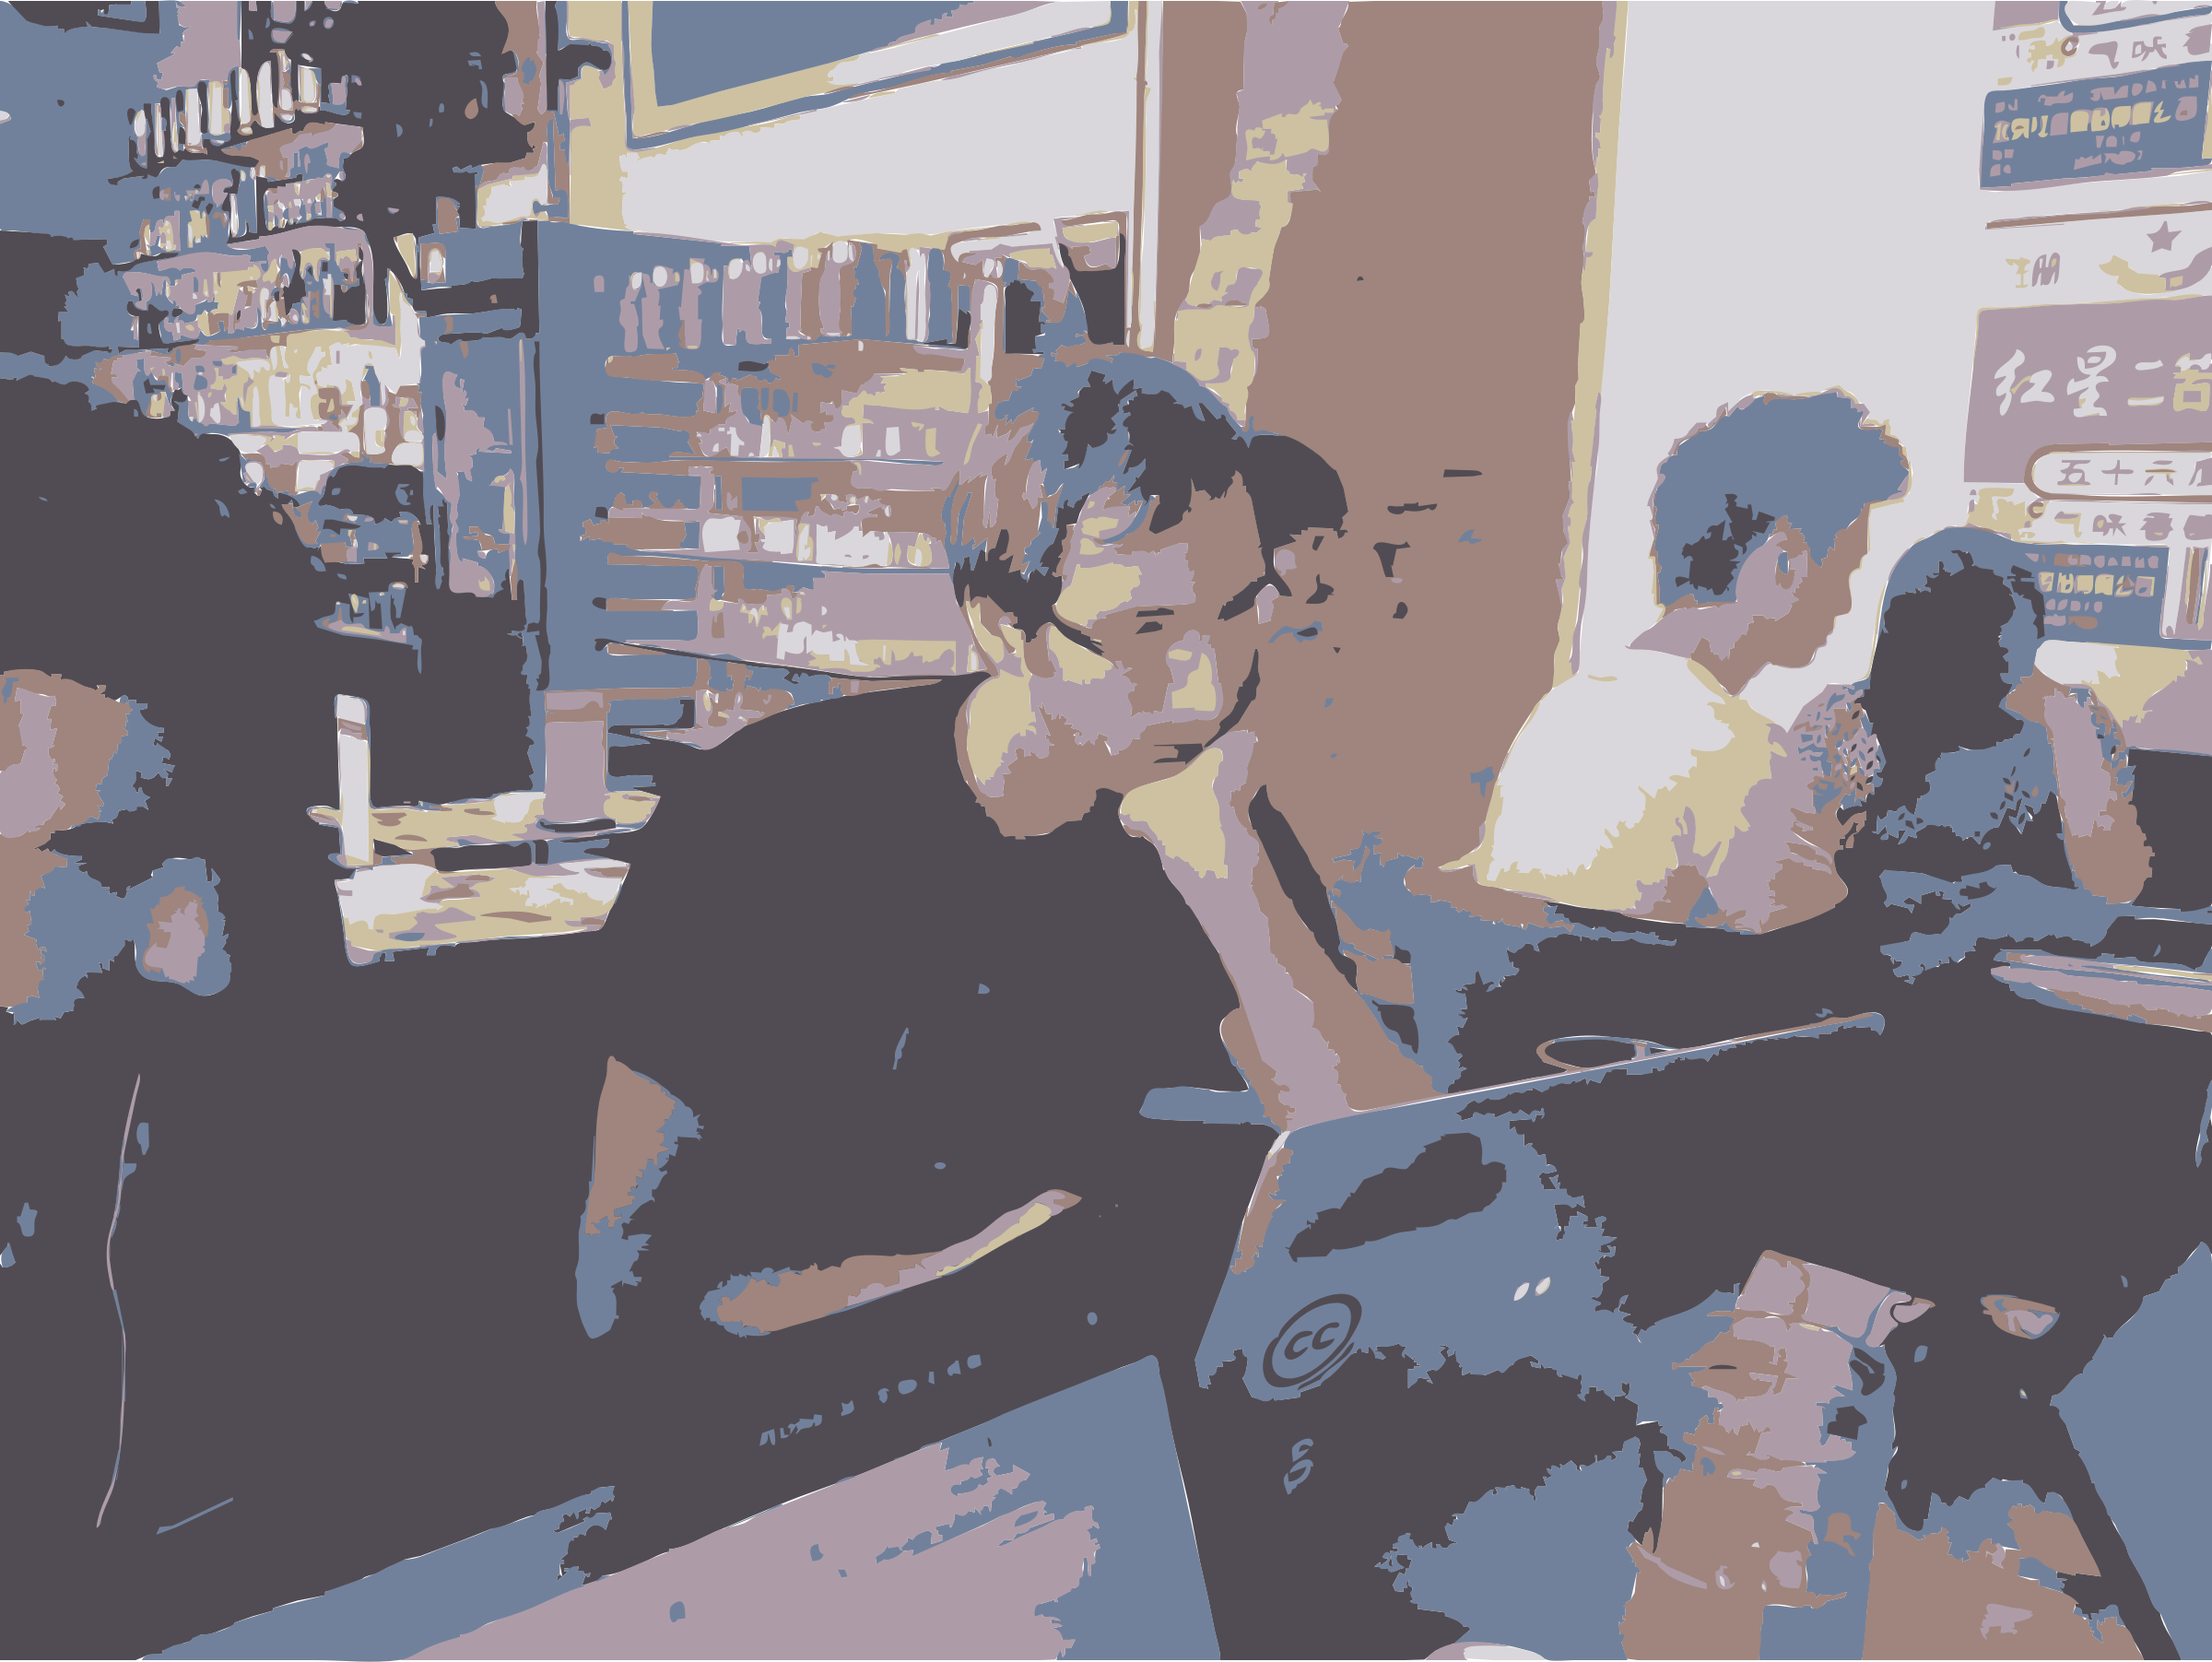 Barry Working at Bookworm by rejon